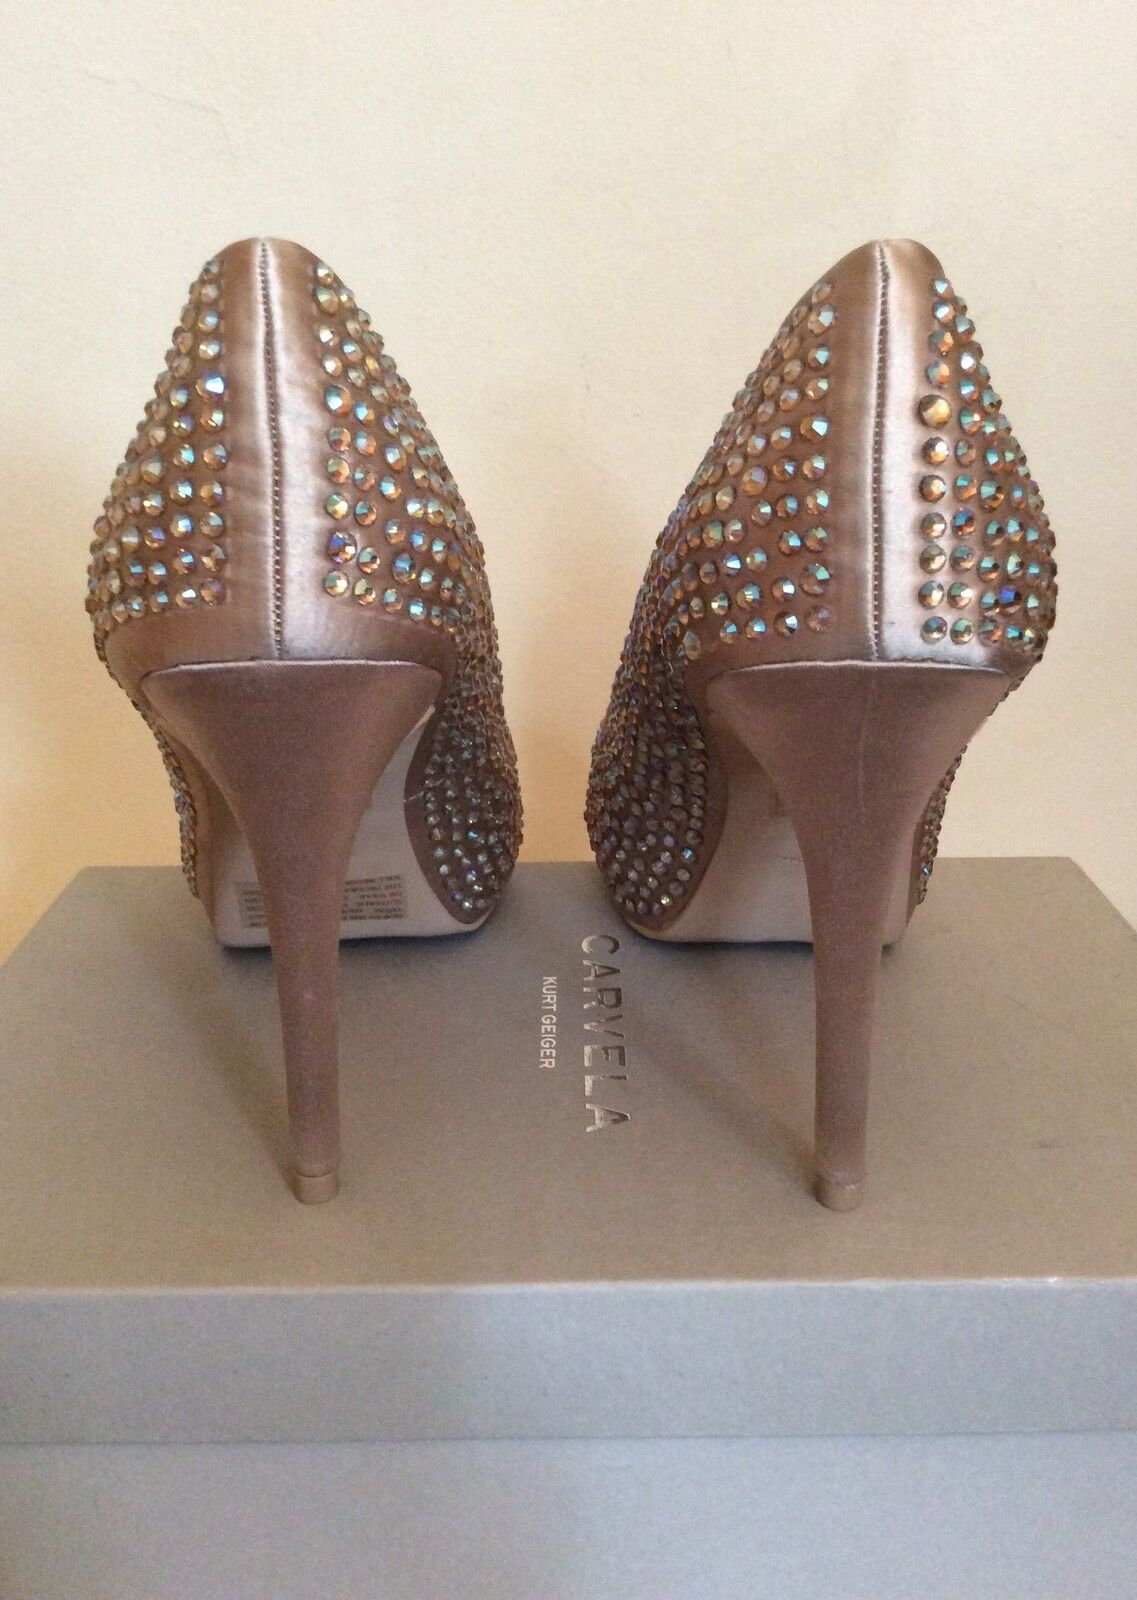 NEW IN BOX CARVELA FOR KURT GEIGER NUDE NUDE NUDE SATIN JEWELLED HEELS SIZE 6 39 COST c8c2b6